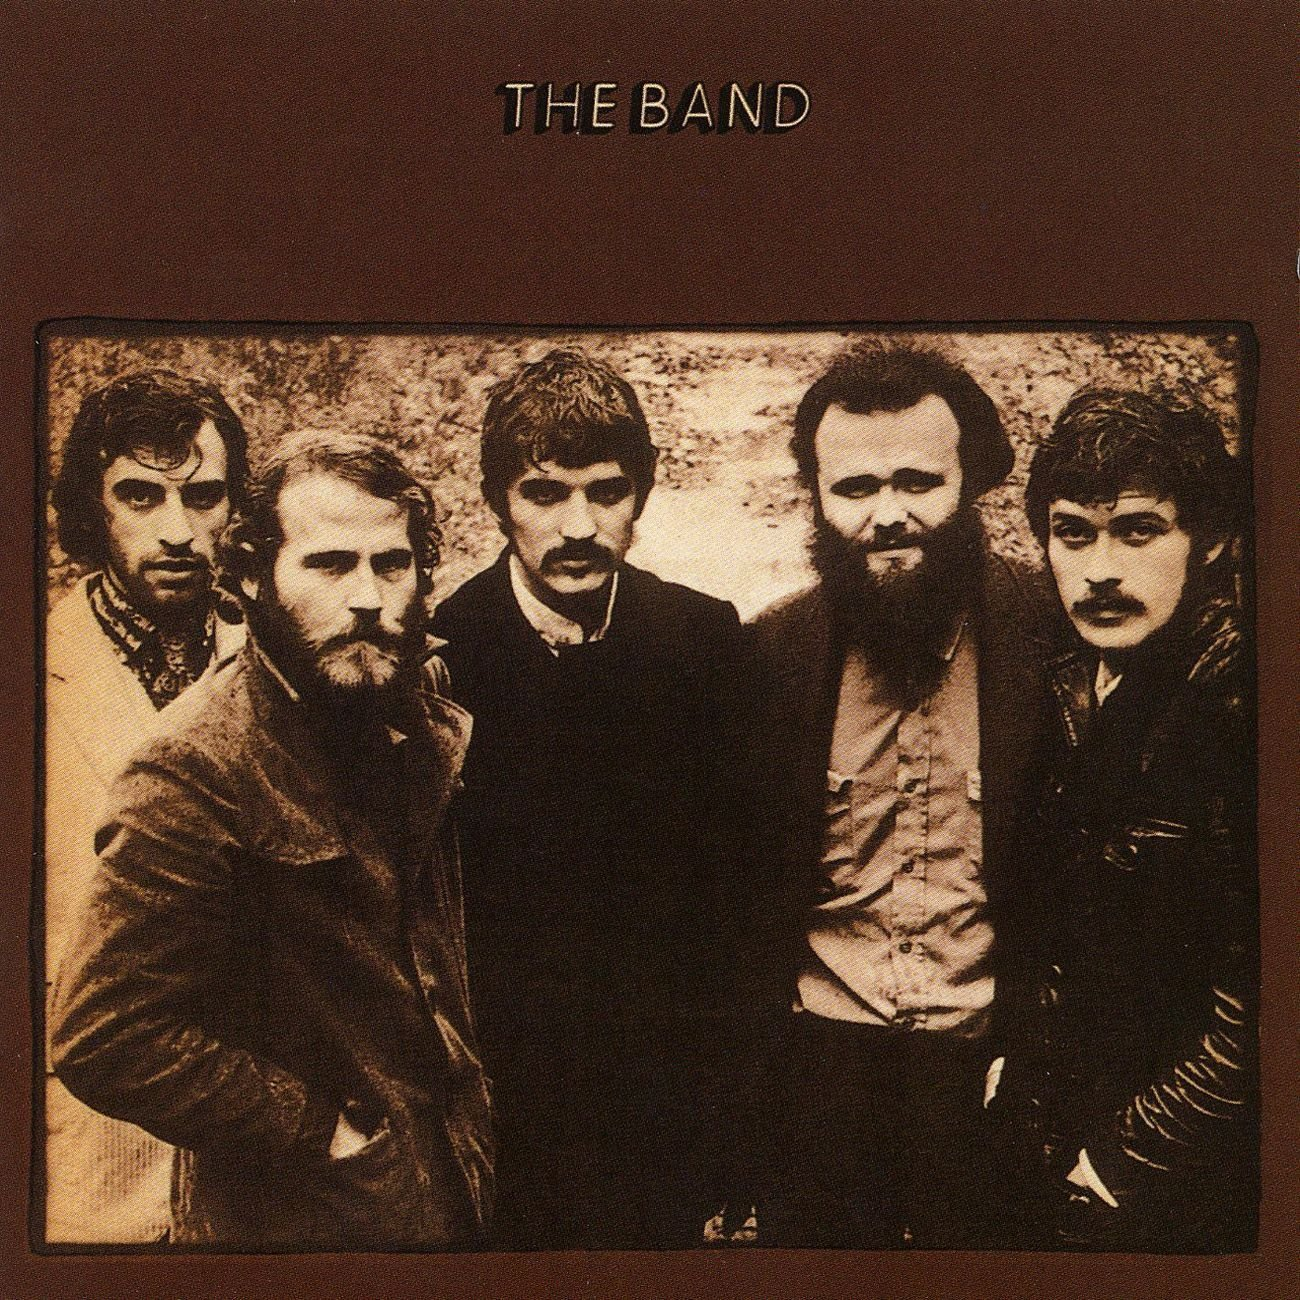 the-band-the-band-brown-album-altobelli.jpg